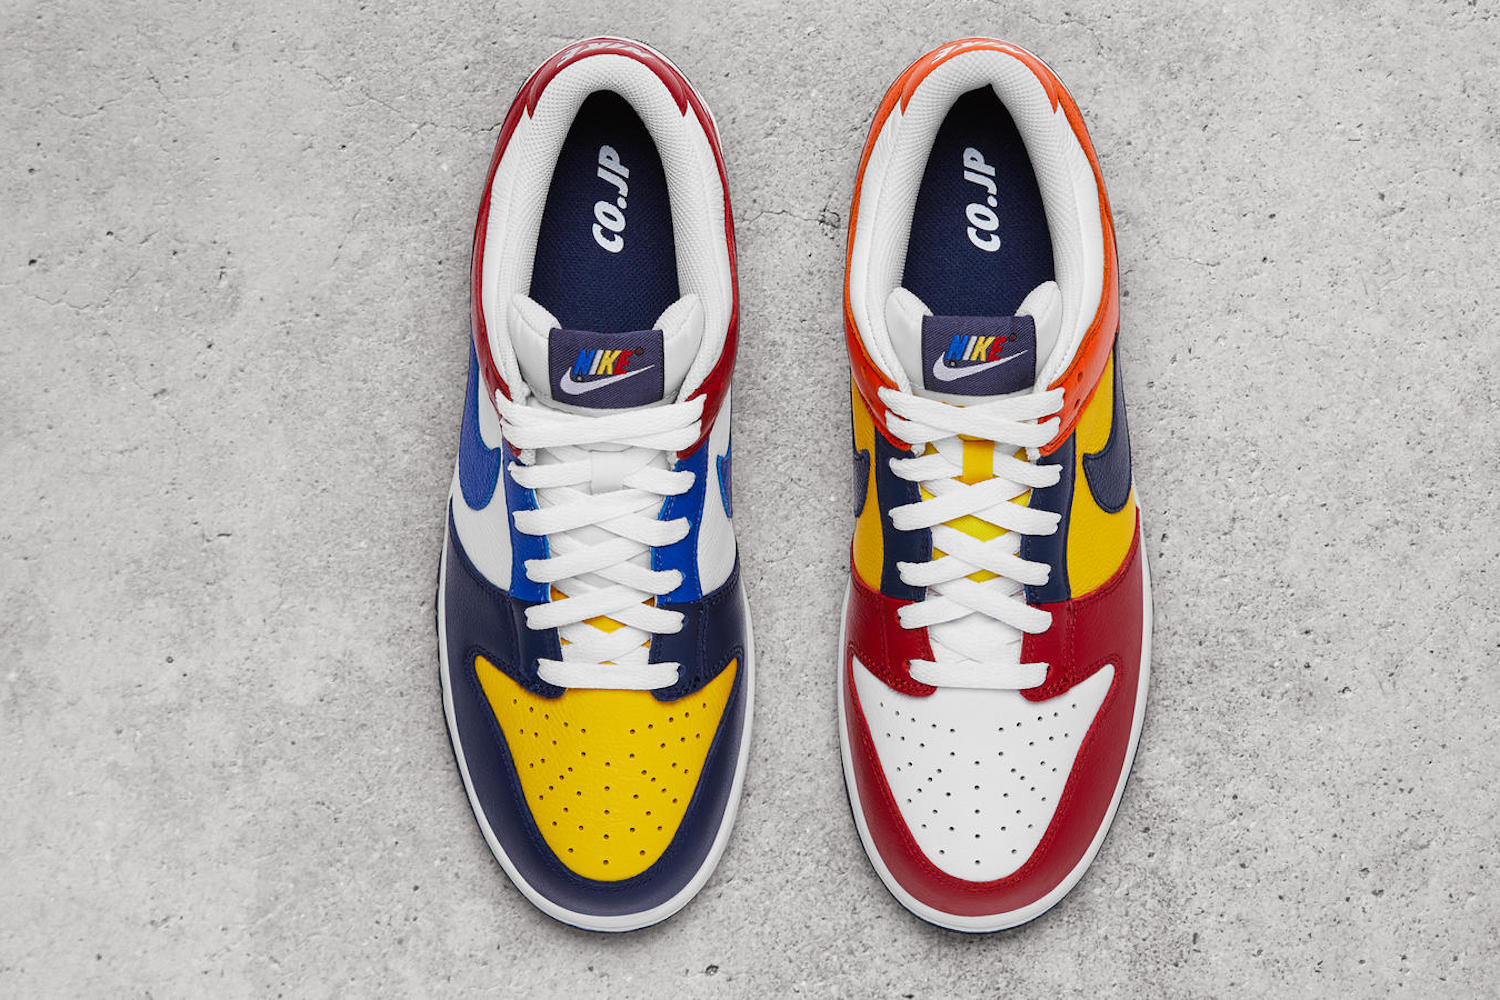 Nike propose une revisite de la Dunk Low haute en couleurs